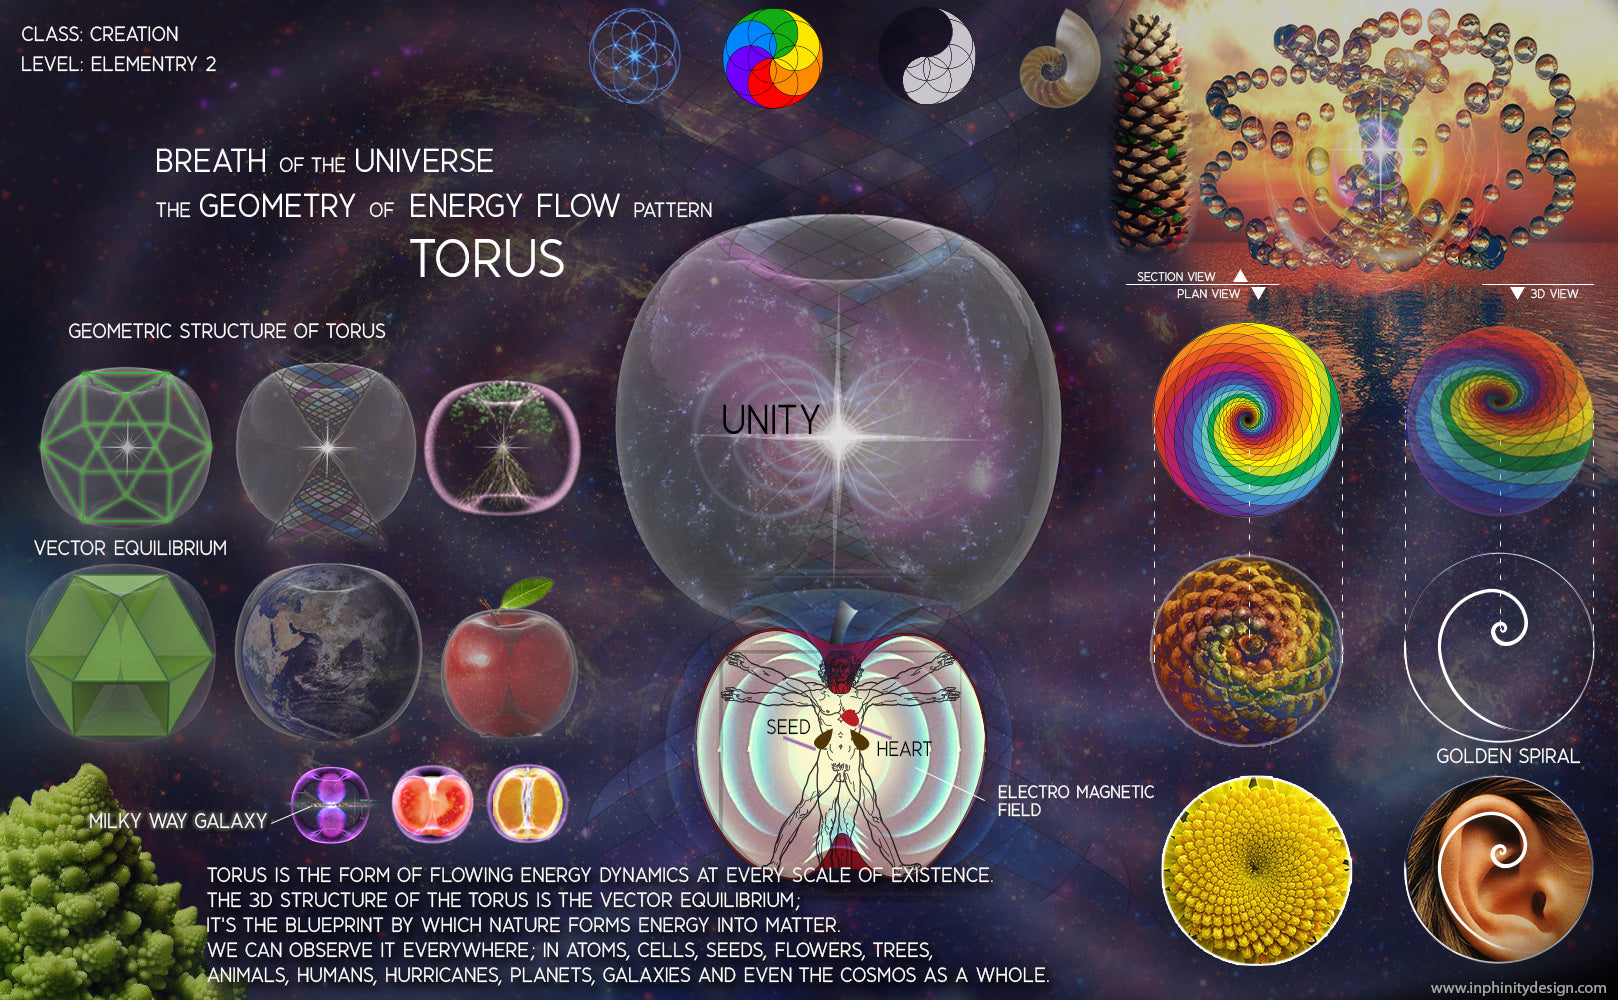 Breath of the Universe Torus Golden ratio fibonacci sacred geometry sunflower ying yang harmony balance